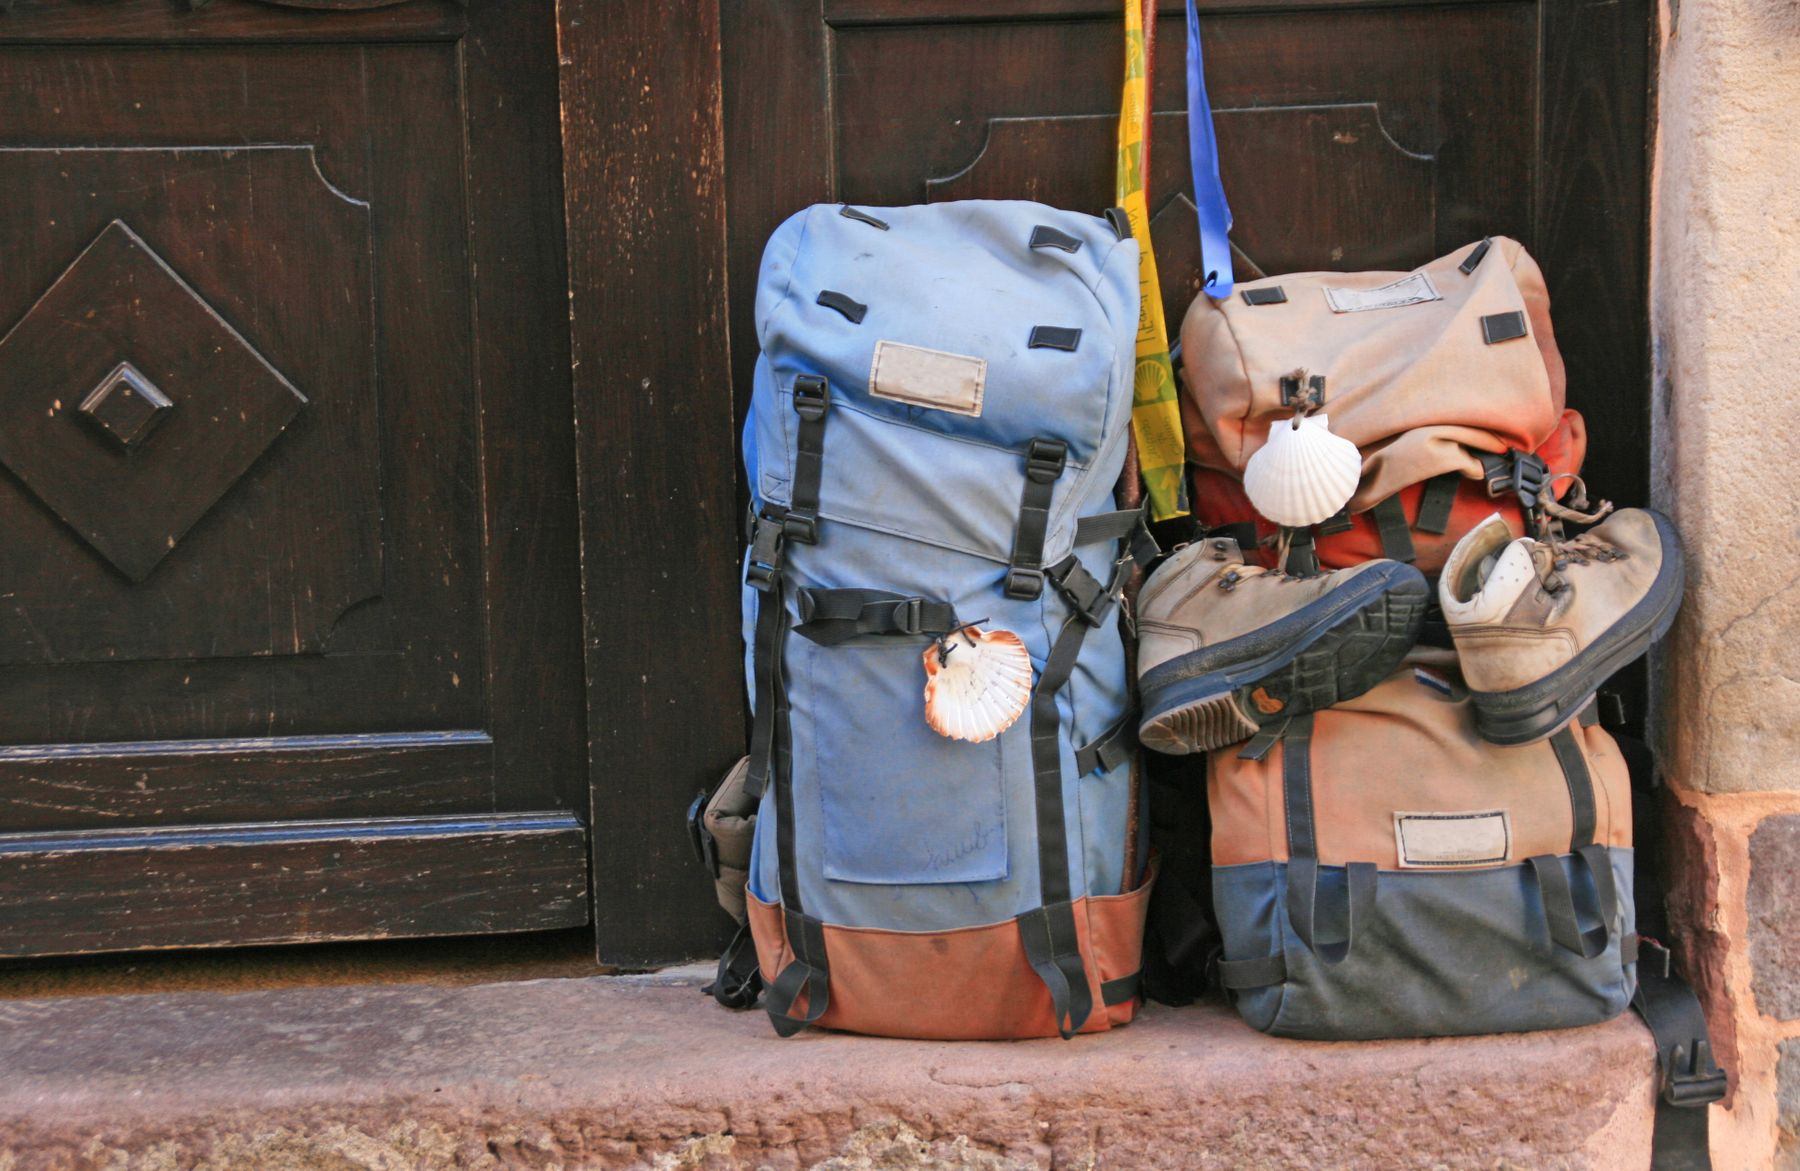 Two large backpacks lean against a wooden door. They are small enough to avoid Delta baggage fees.